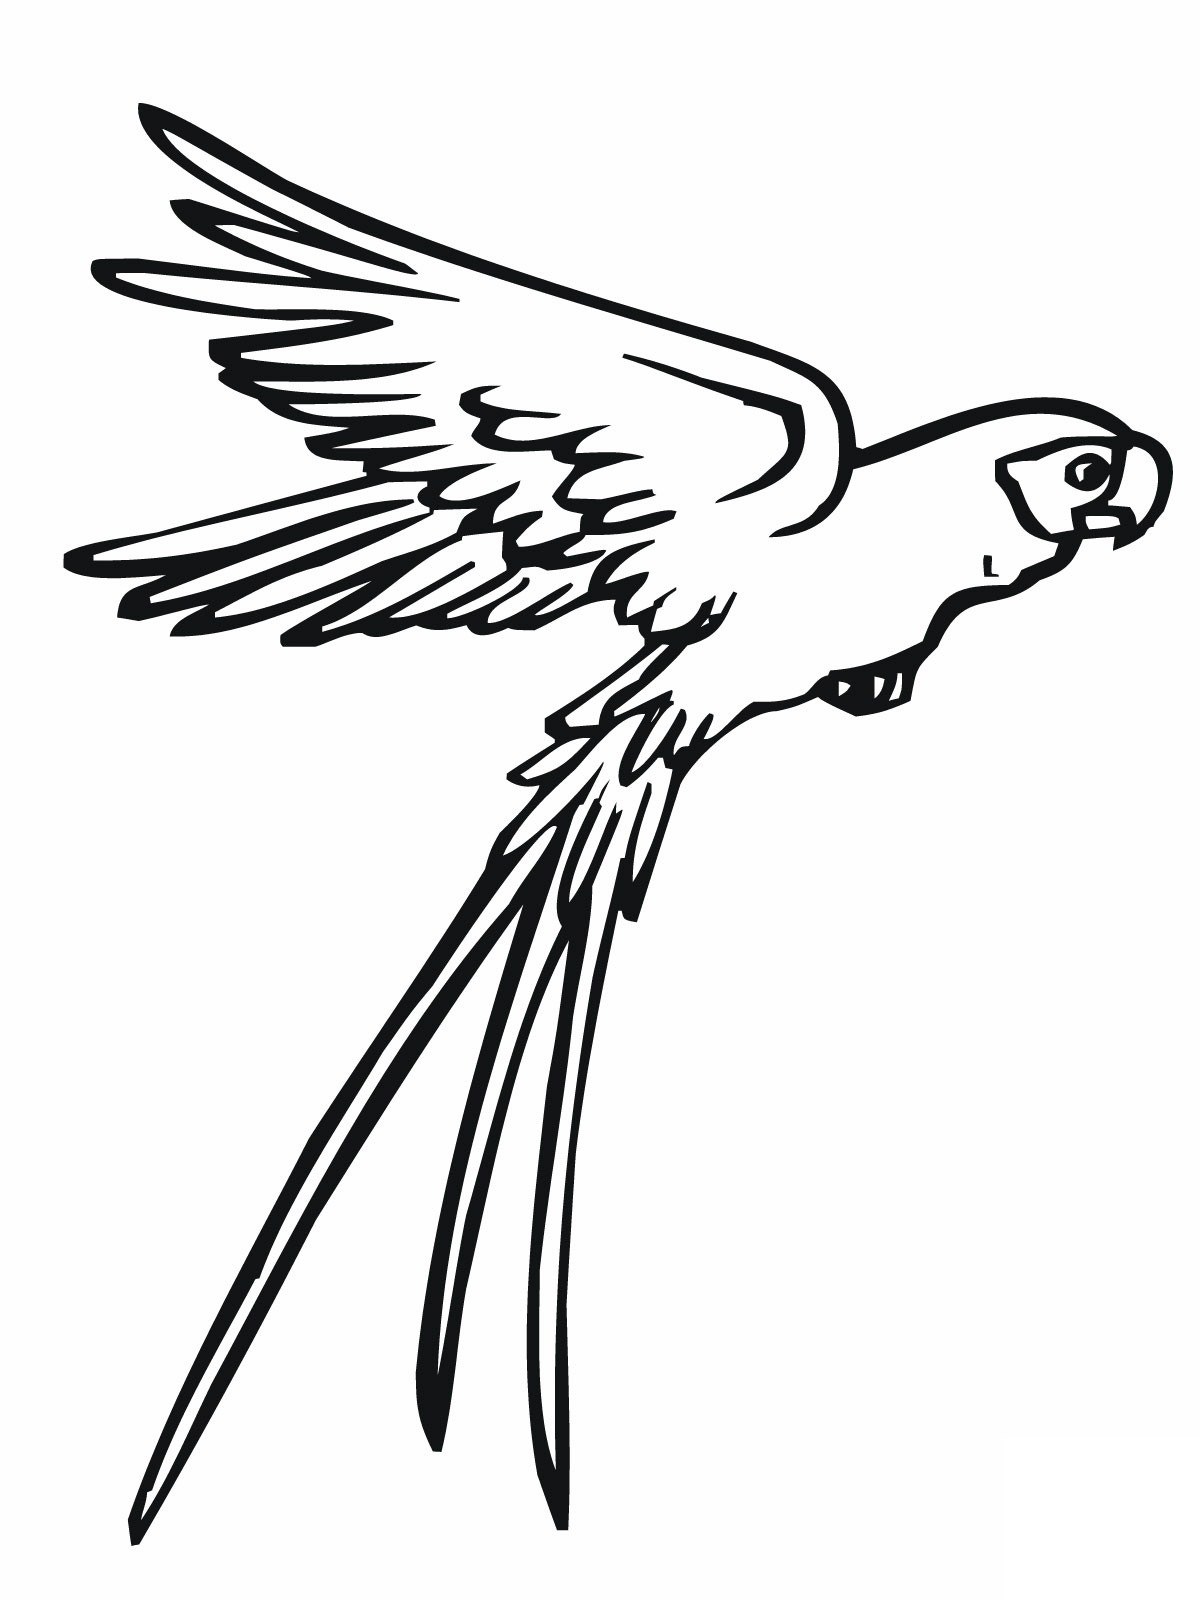 √ Free Printable Parrot Coloring Pages For Kids - Free Printable Parrot Coloring Pages